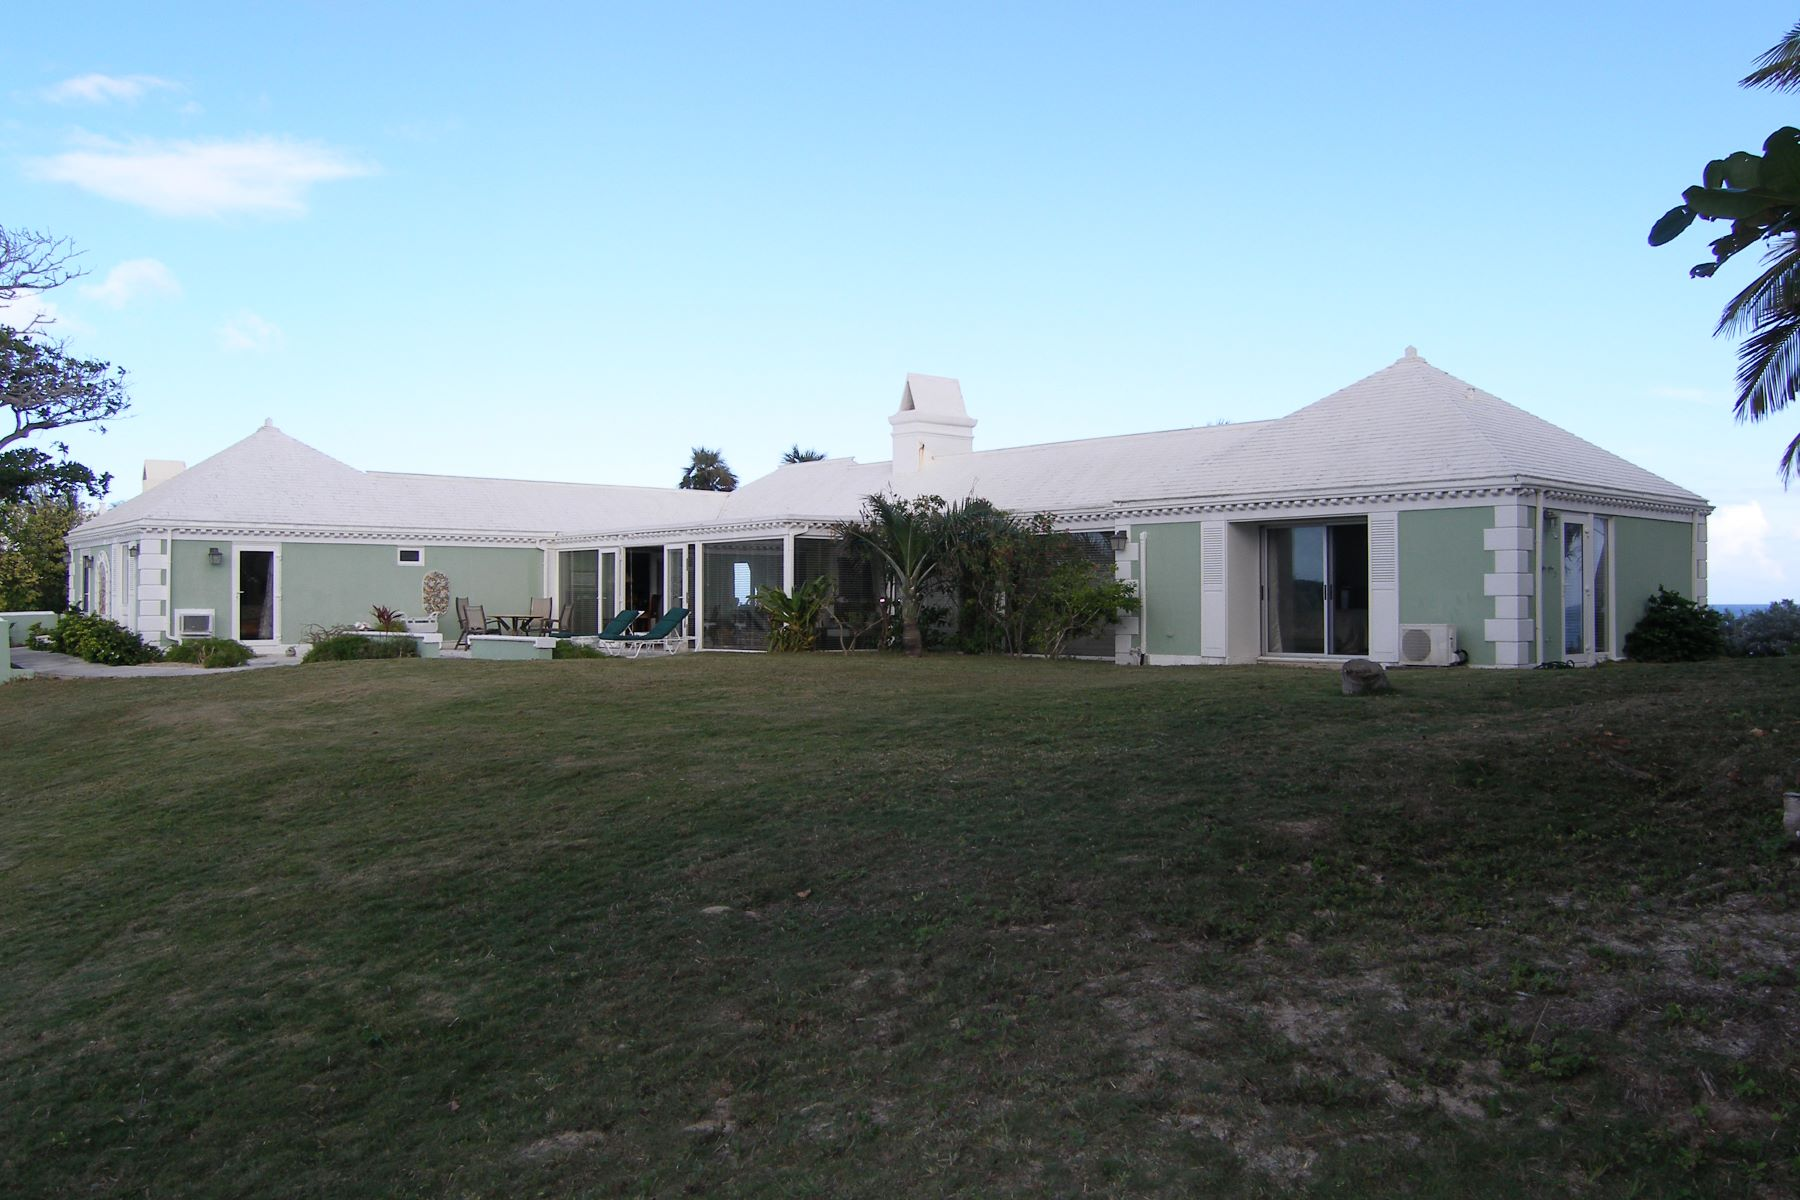 Casa Unifamiliar por un Venta en Vista del Mar Cotton Bay, Rock Sound, Eleuthera Bahamas